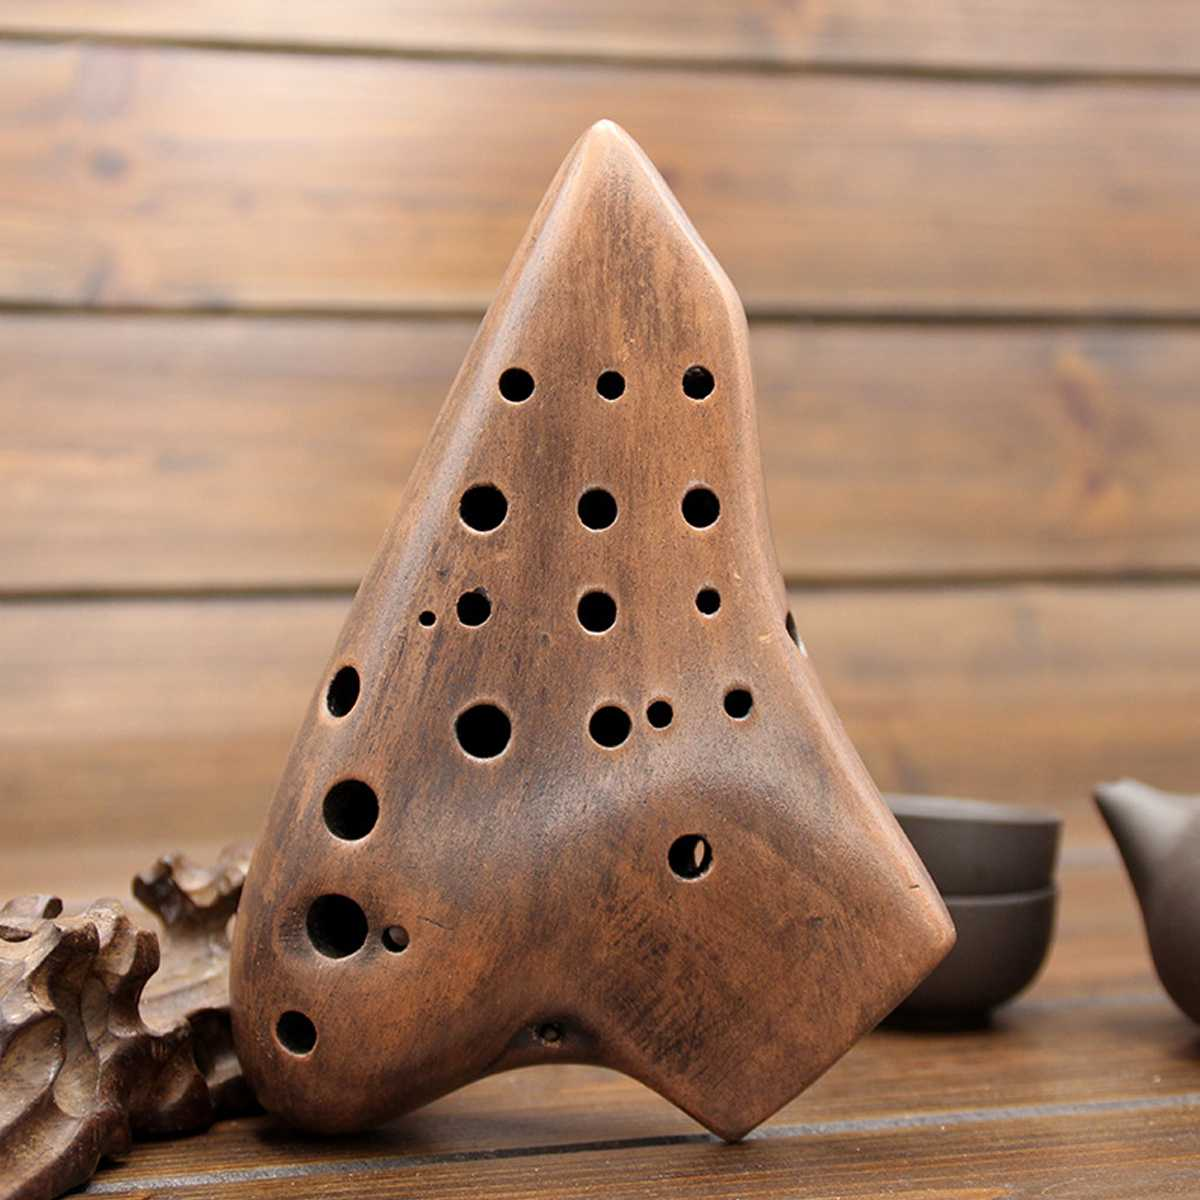 2019 Wholesale Three Tube Midrange C Key Ocarina Smoked Vintage Ceramic Ocarina Hand Made Piccolo Flute Instrumentos Musicales